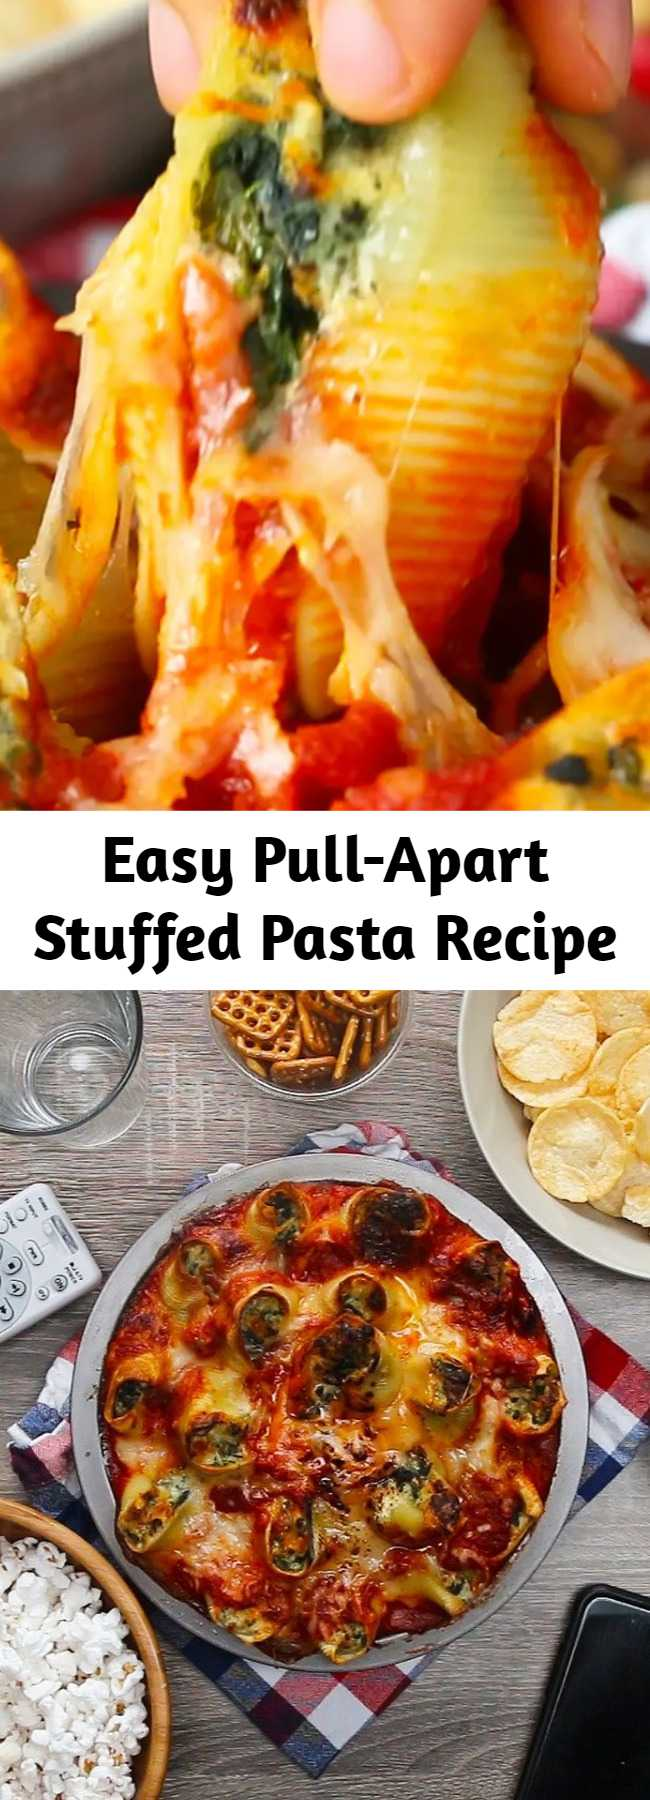 Easy Pull-Apart Stuffed Pasta Recipe - This Pull-Apart Stuffed Pasta Is Everything You Could Want In An Appetizer